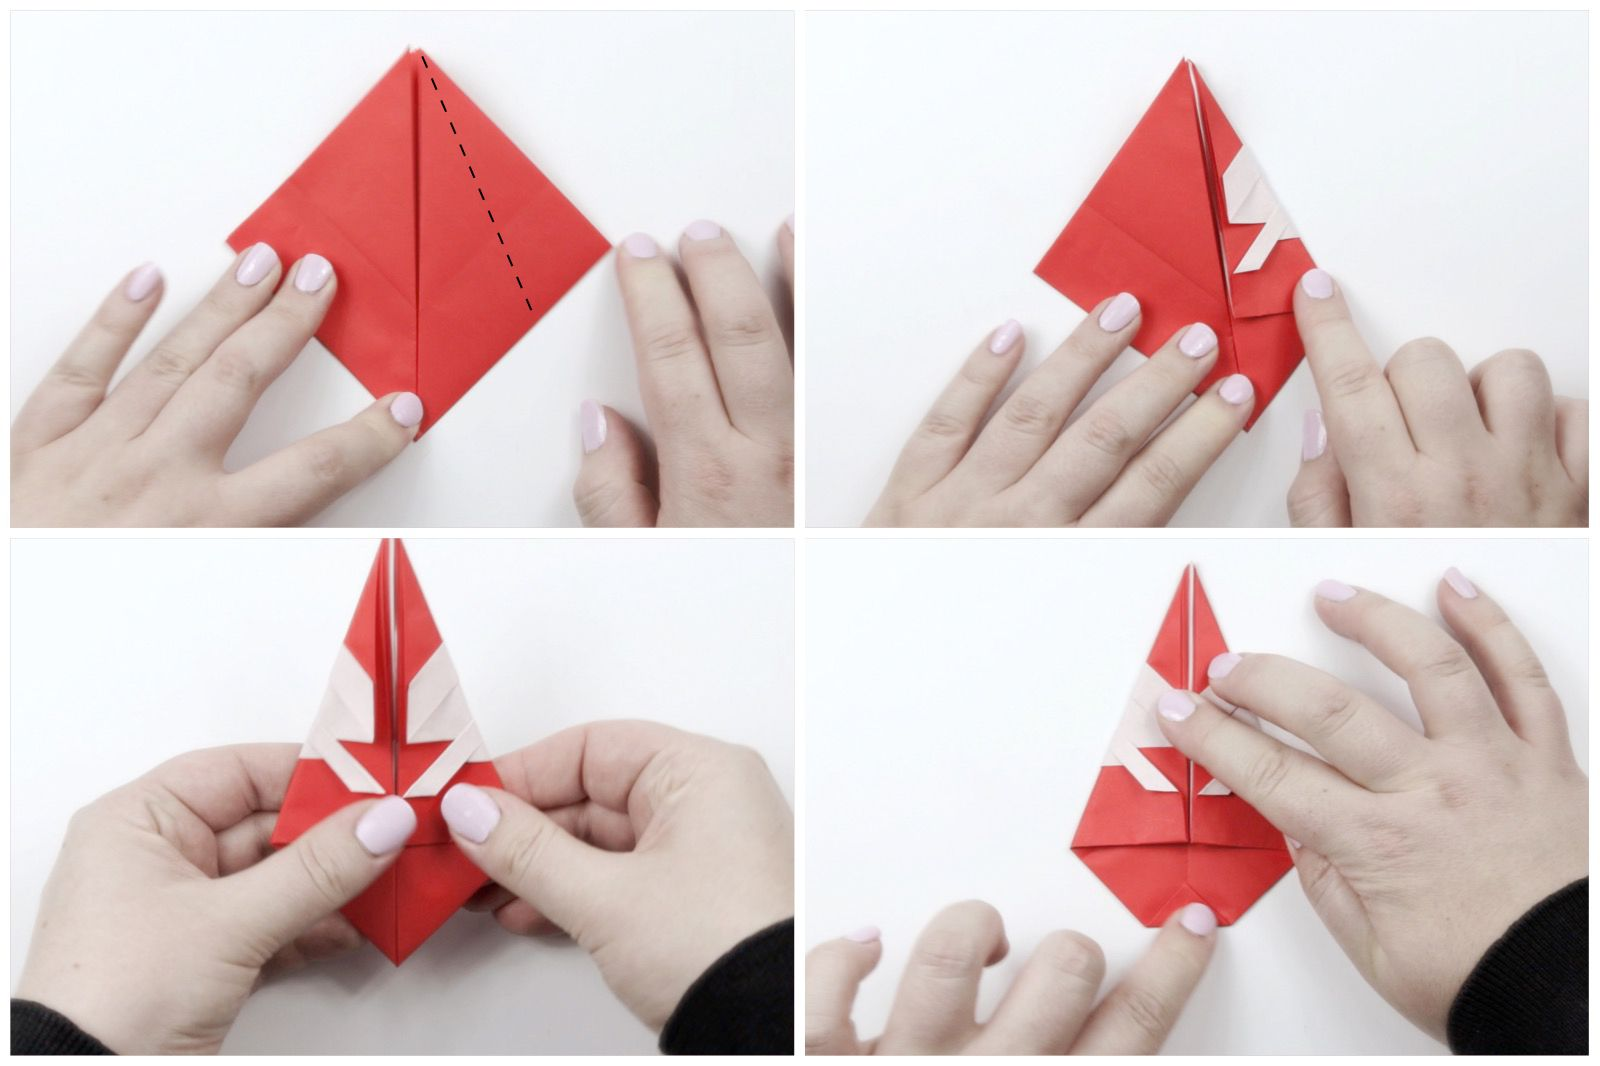 How to Make DIY Origami Santa Claus? | The Idea King Tutorial #40 ... | 1066x1600